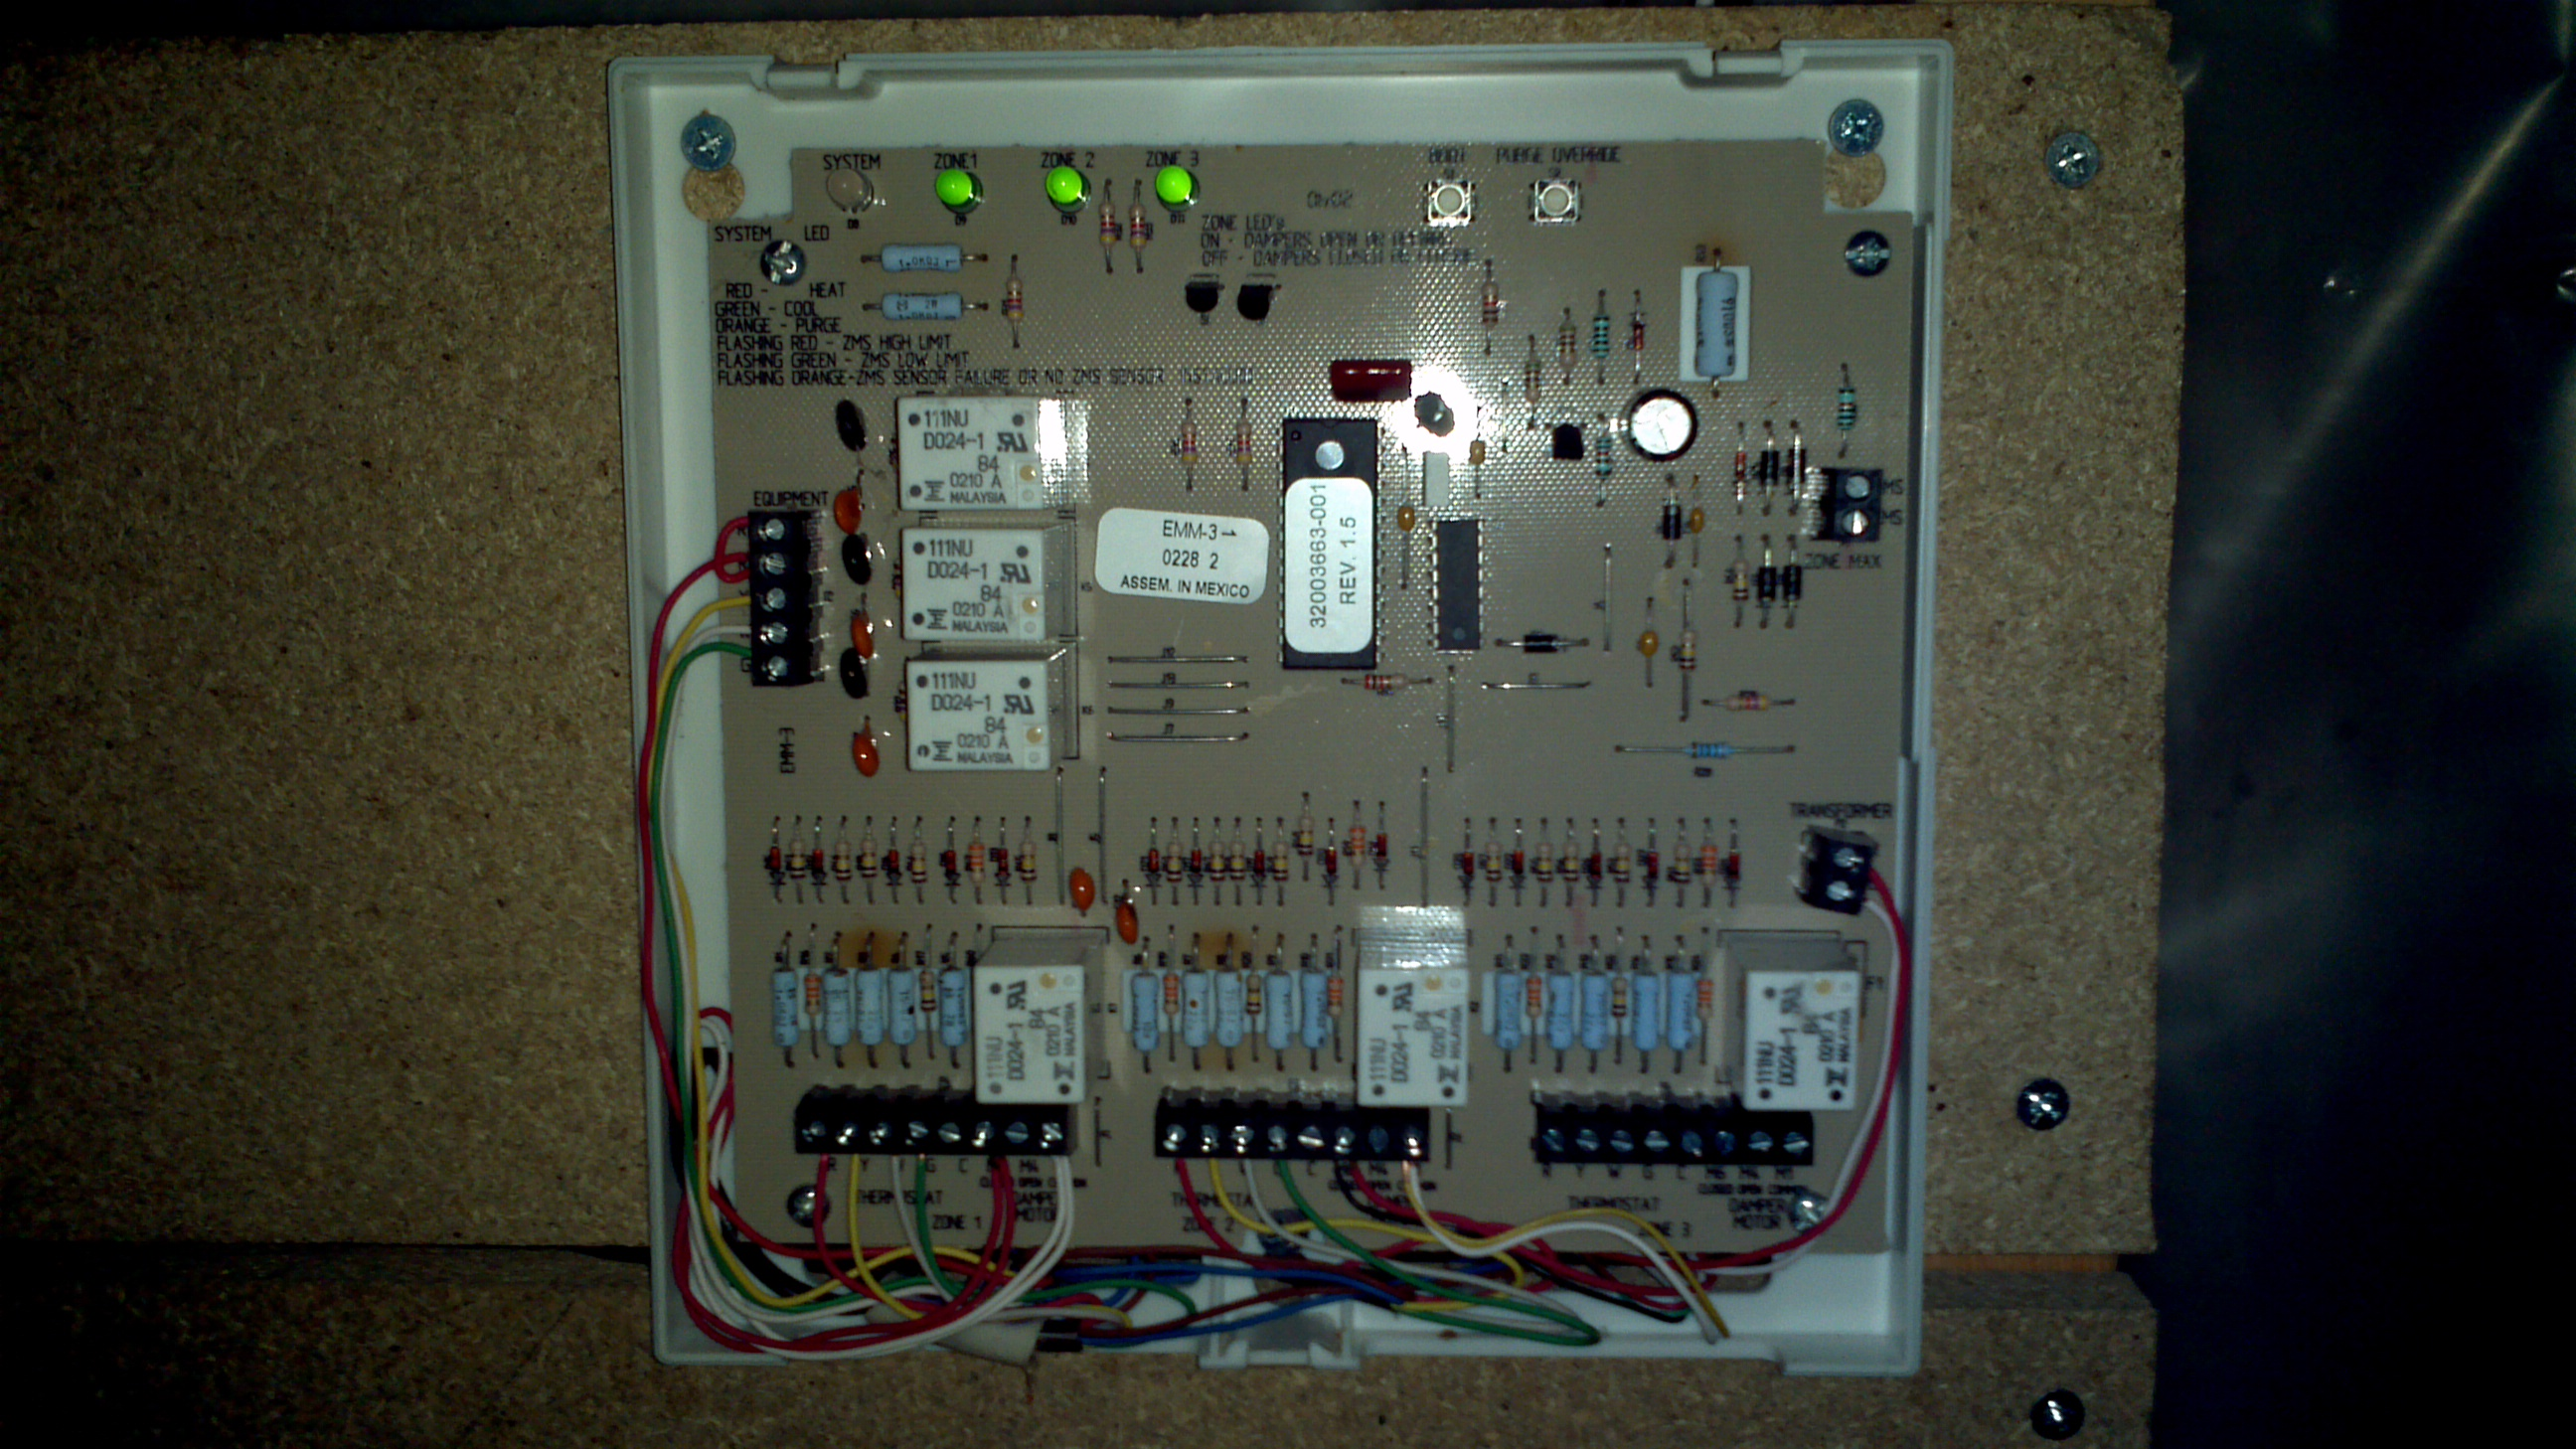 Trolatemp Wiring Diagram And Schematics Honeywell Circuit Board Diagrams Trol A Temp Schematic Module